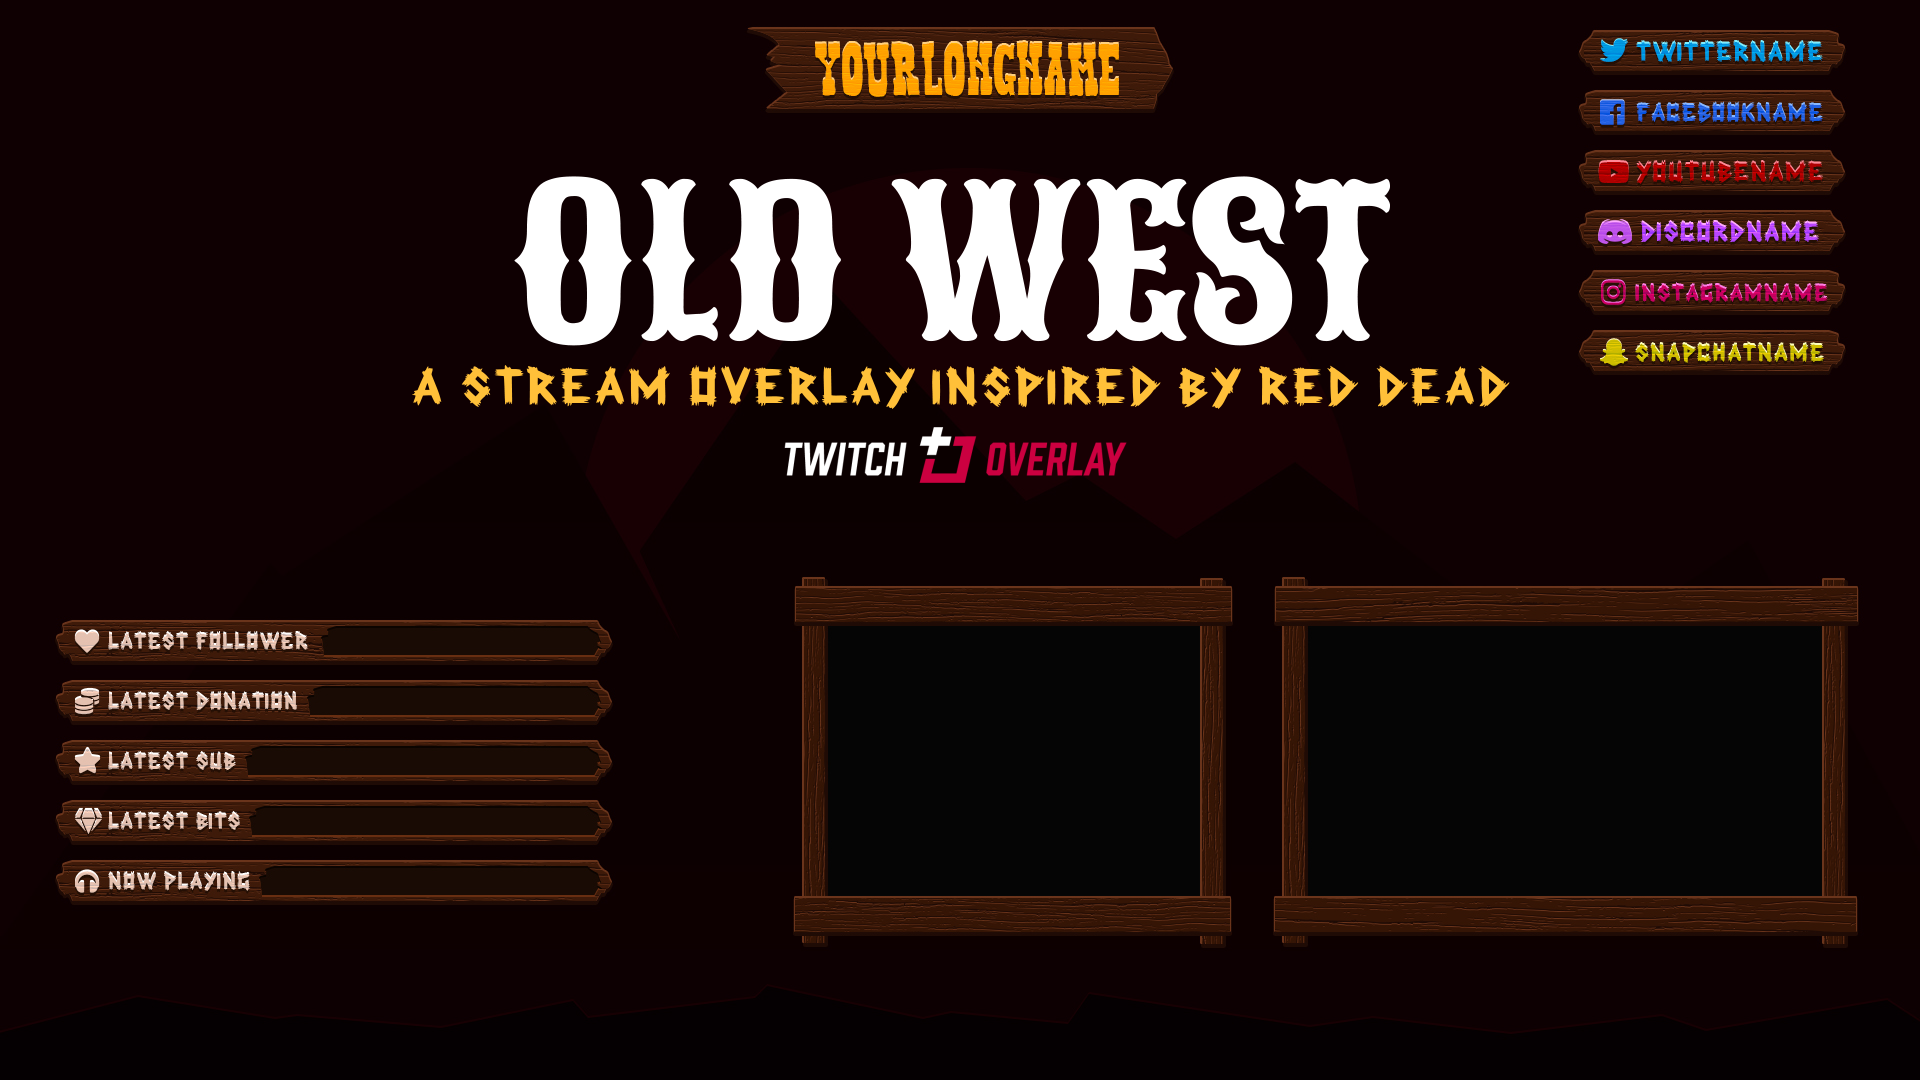 red dead redemption 2 overlay - Twitch Overlay